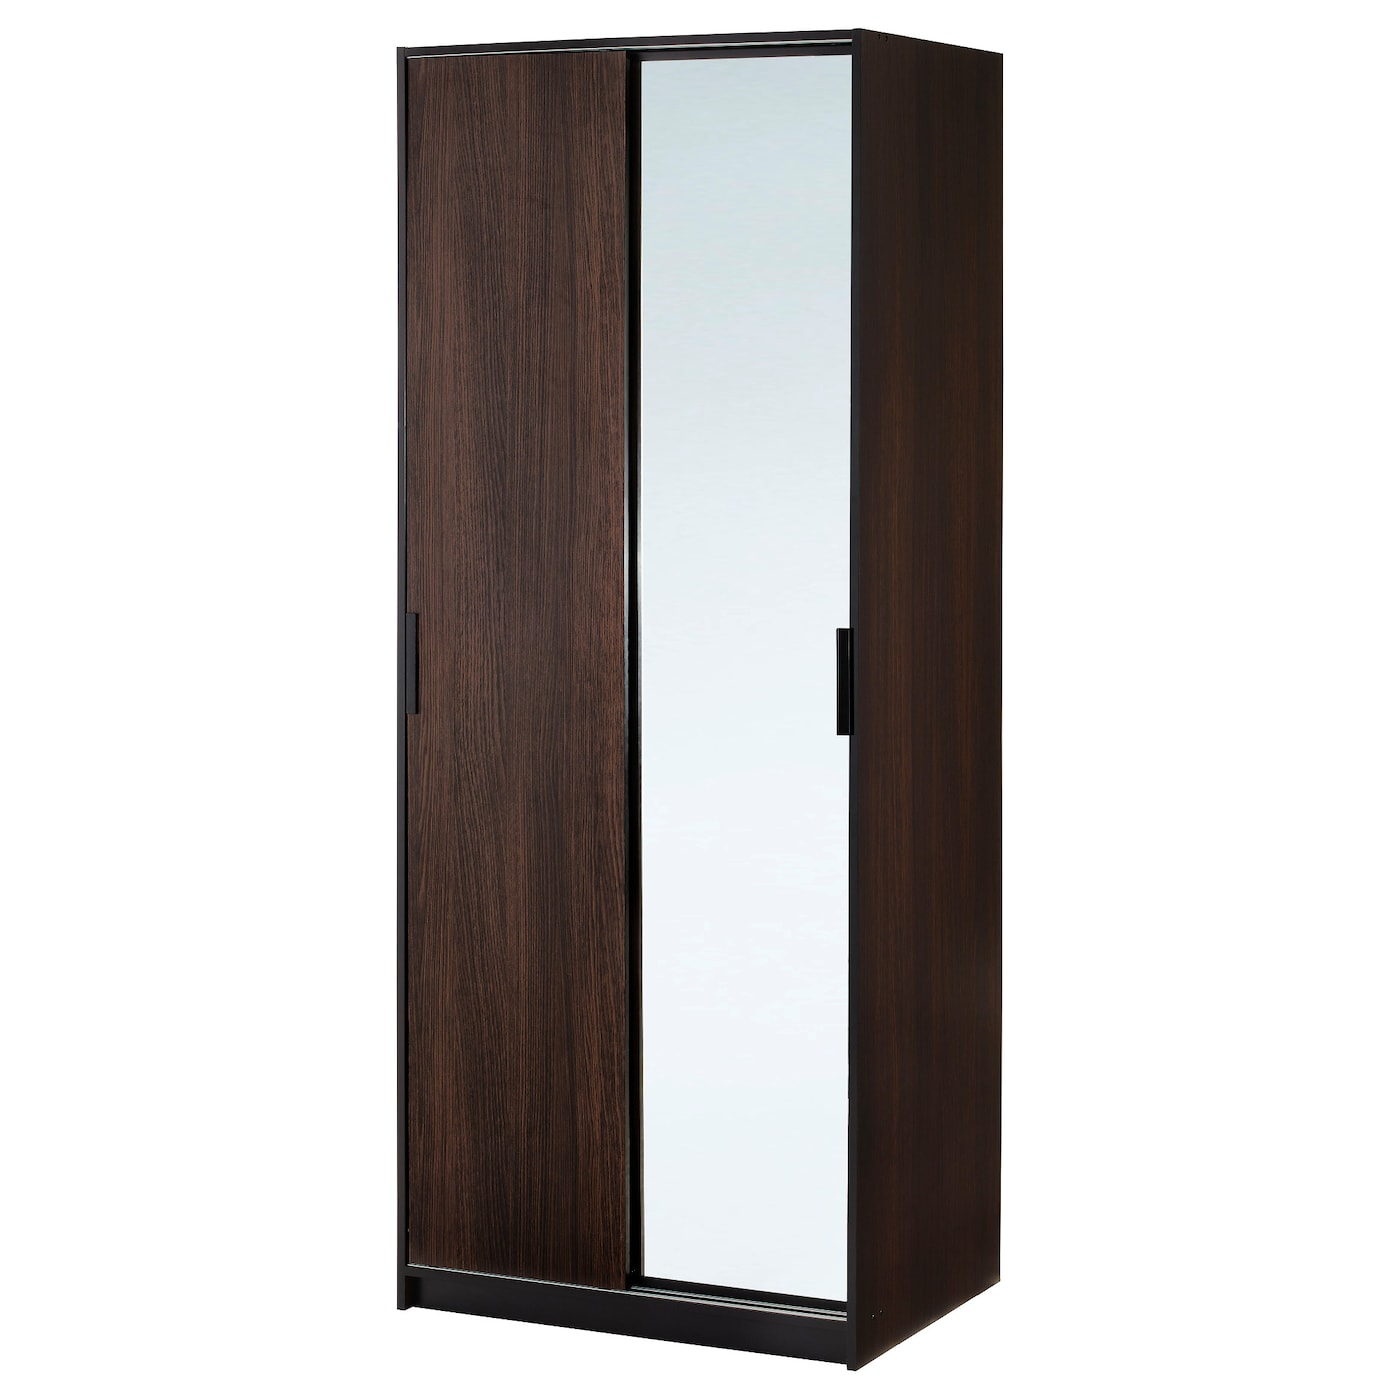 Trysil wardrobe w sliding doors 4 drawers white 118x61x202 for Ikea porte miroir